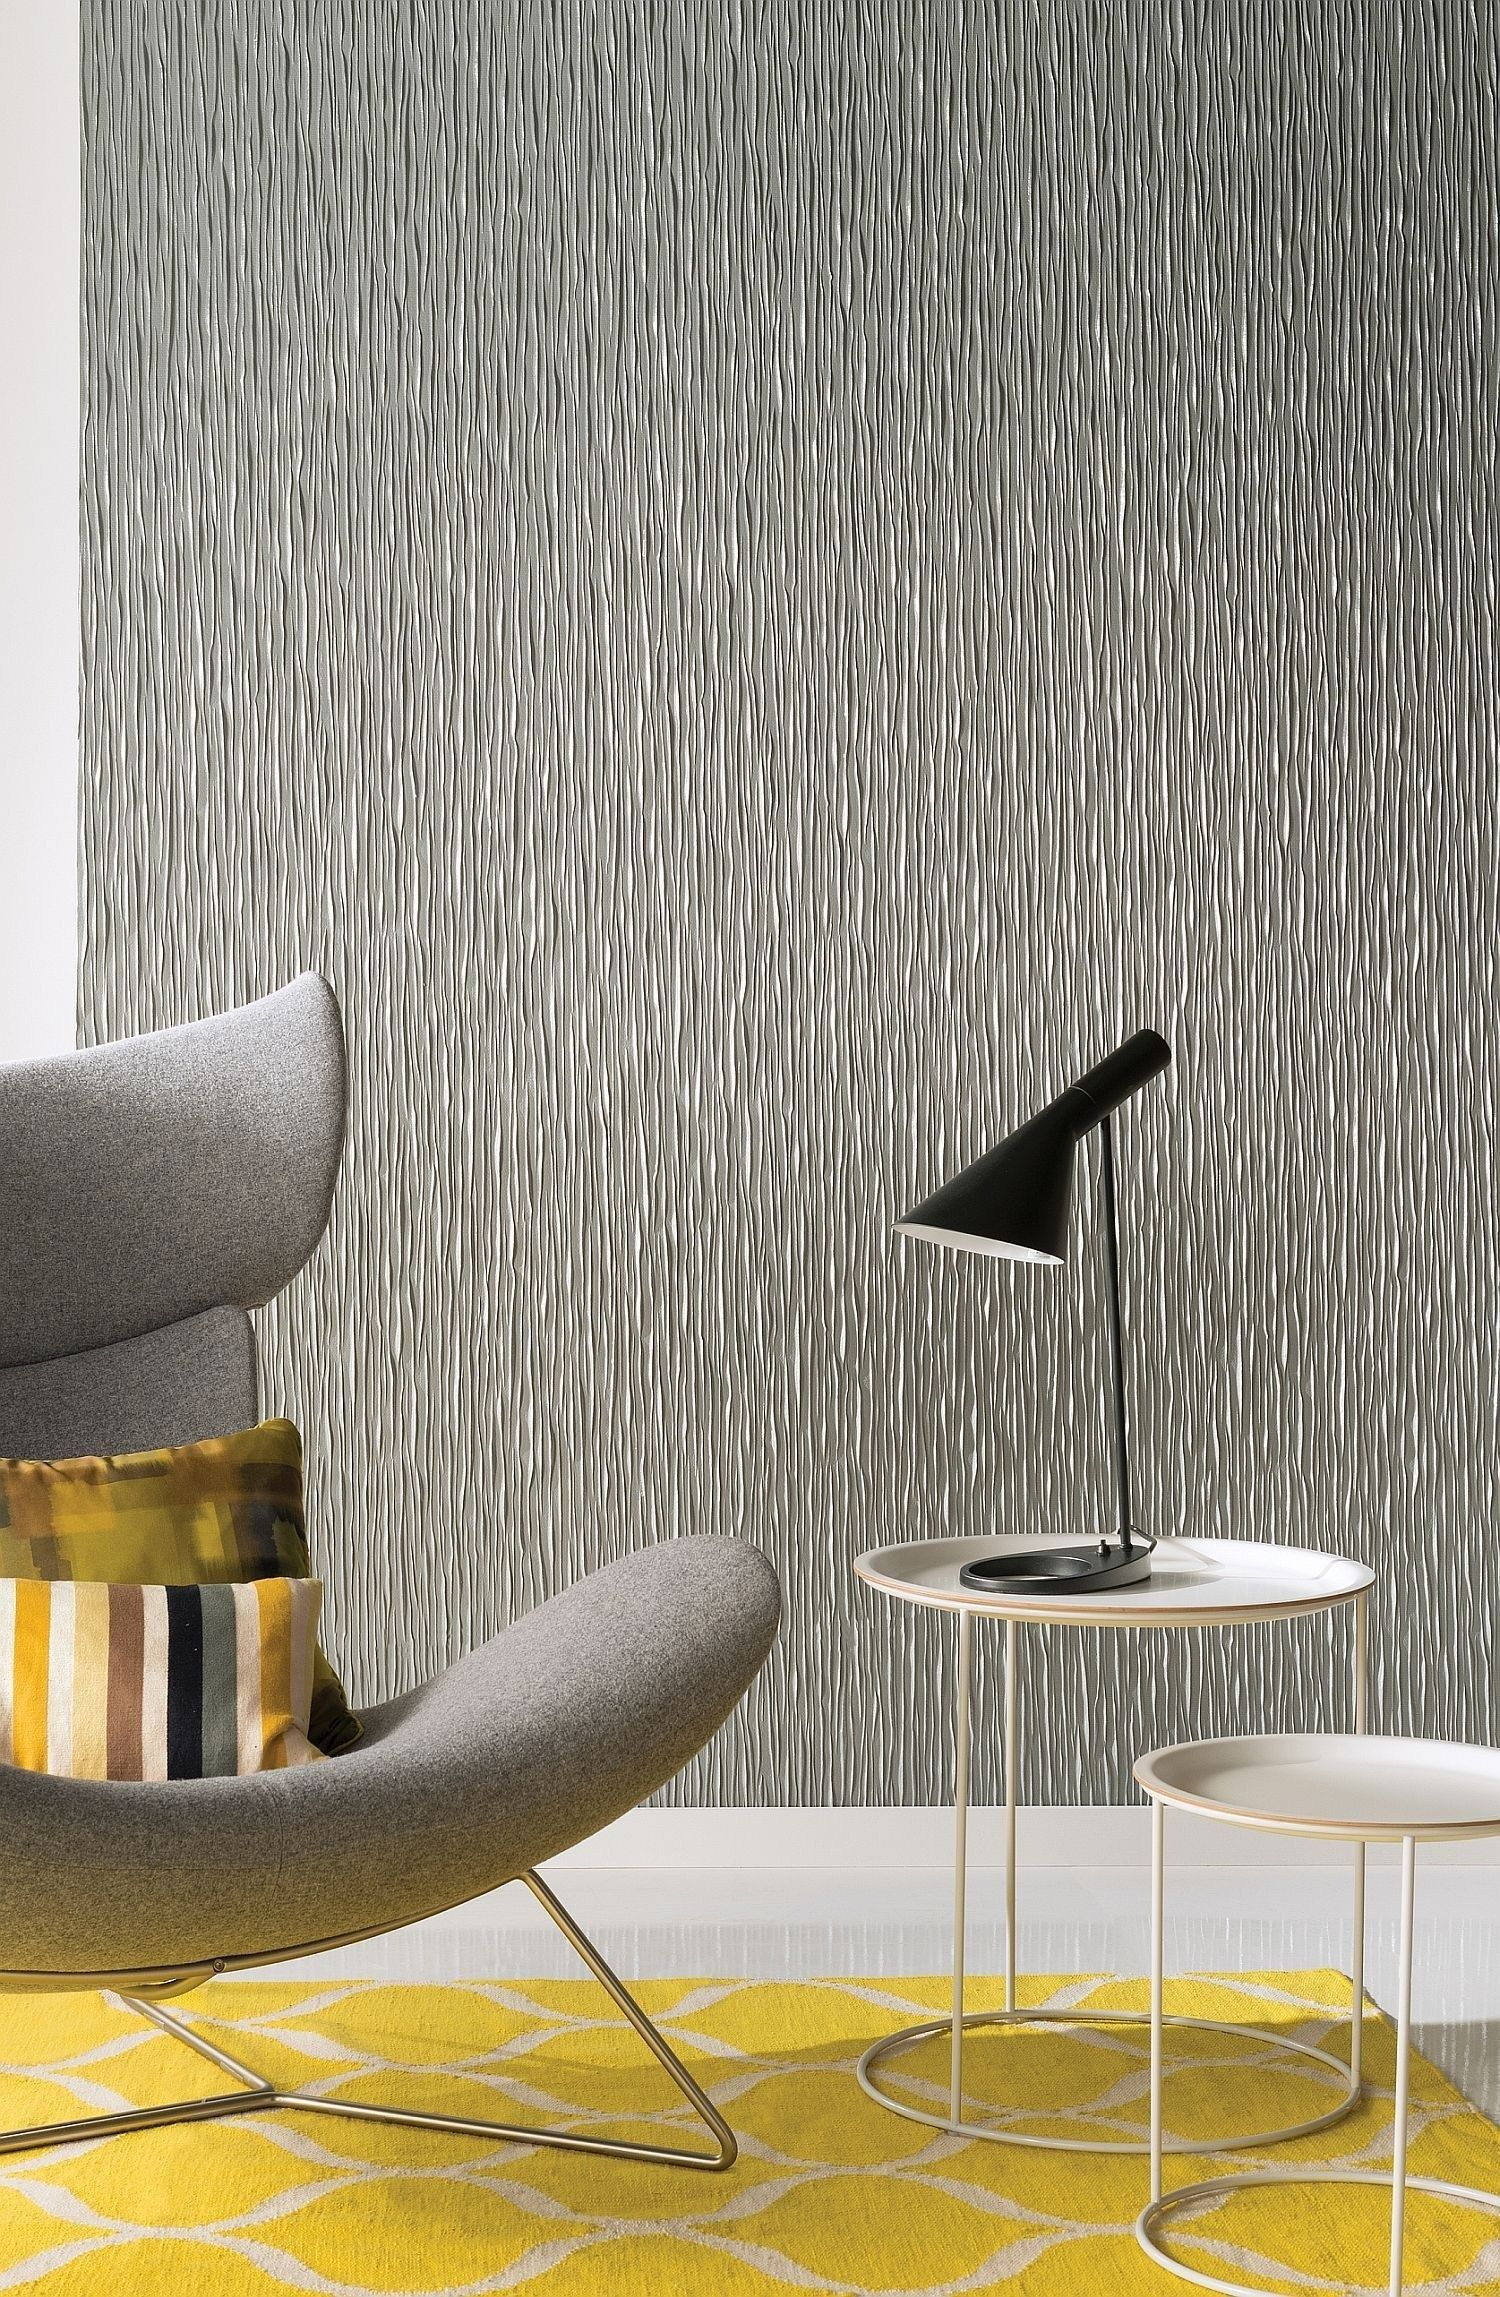 22 Affordable Paintable Textured Wallpaper Ideas For Wall In 2020 Modern Textured Wallpaper Paintable Textured Wallpaper Wallpaper Accent Wall